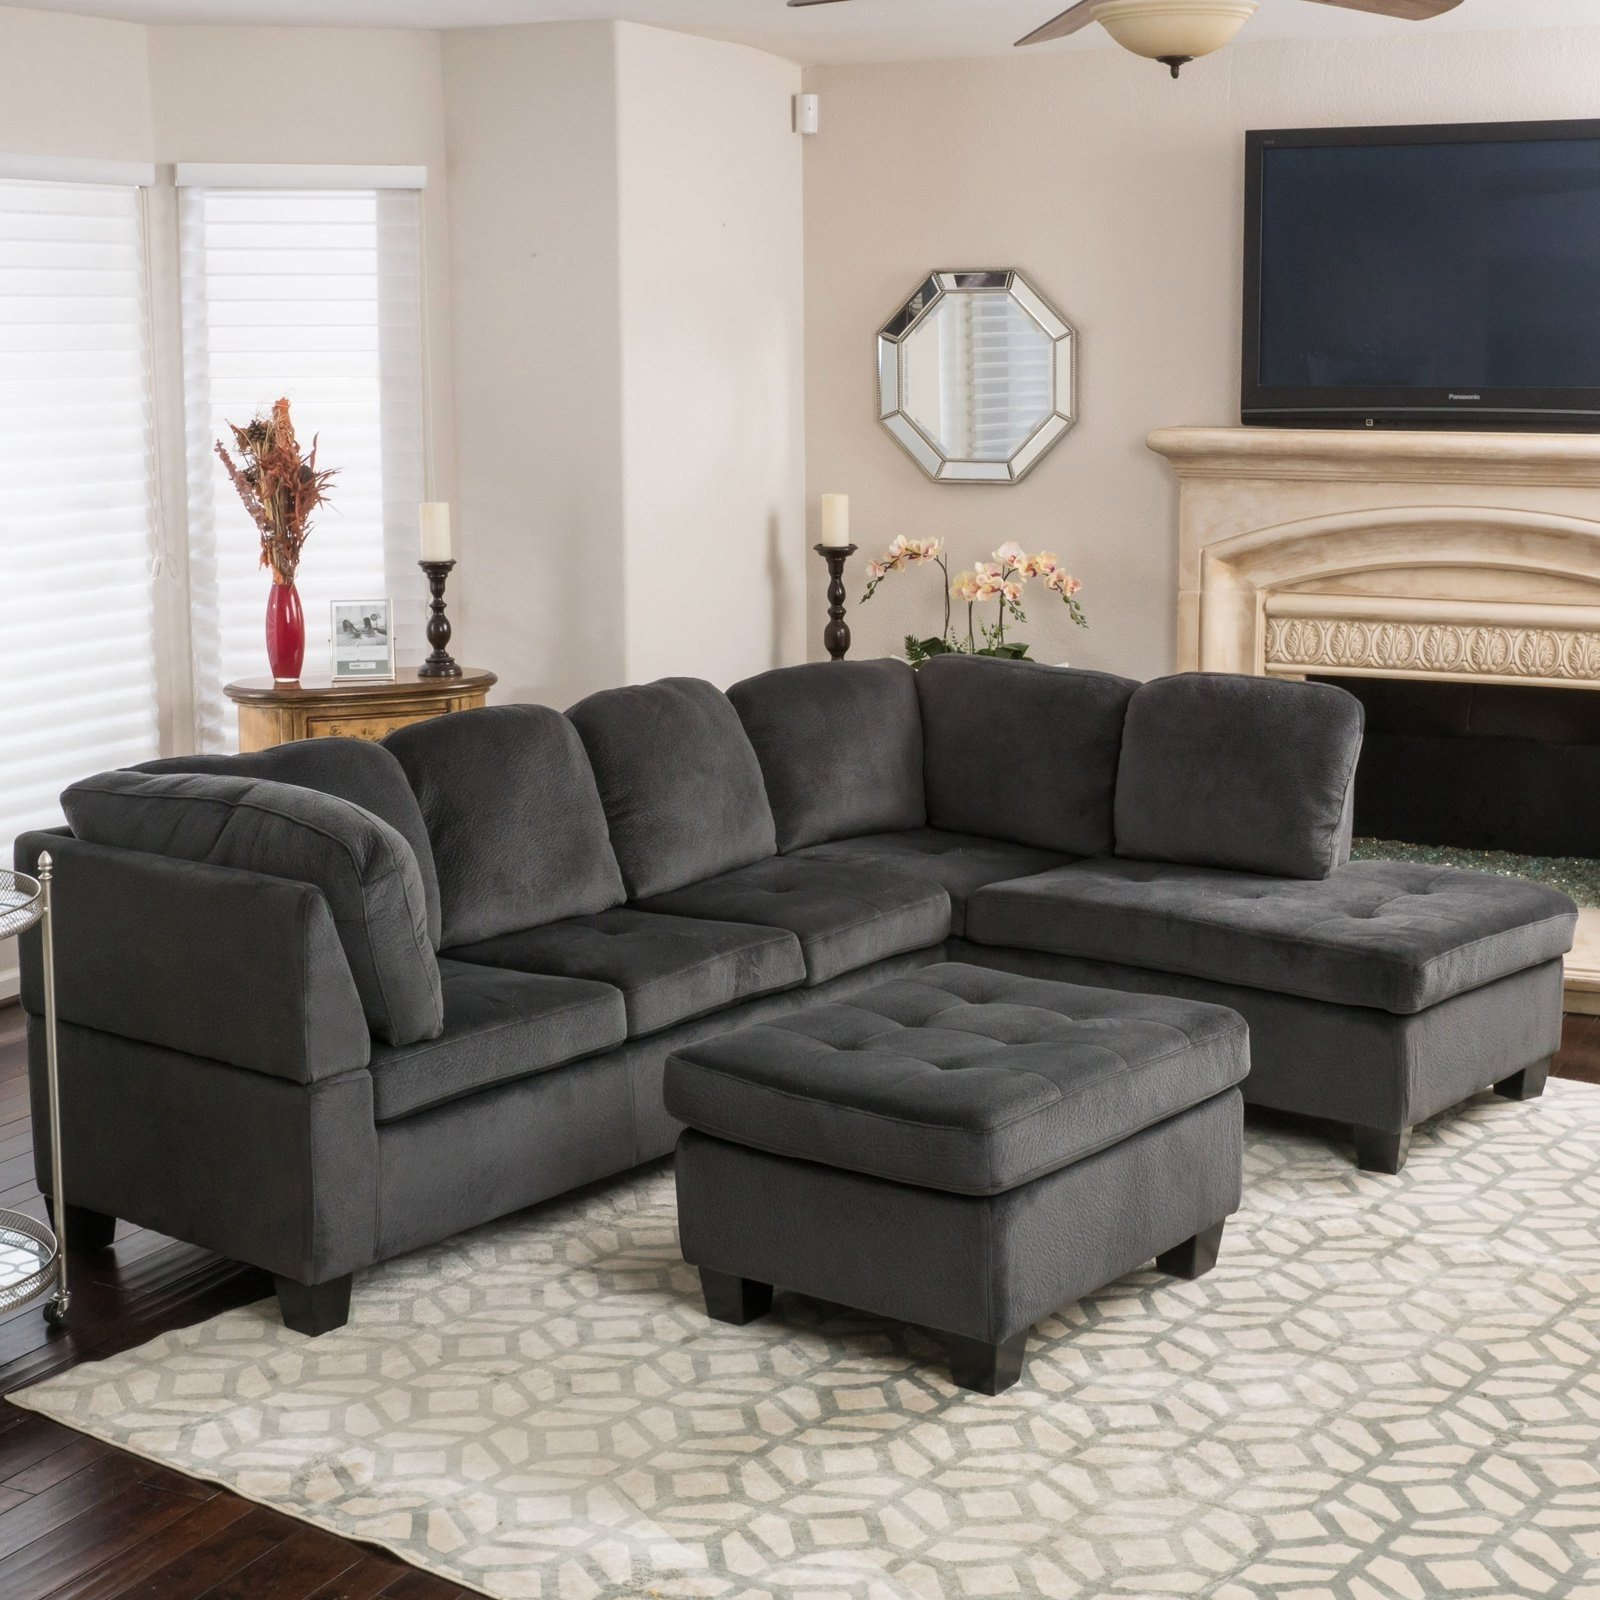 Evan 3 Piece Sectional Sofa | Hayneedle regarding Evan 2 Piece Sectionals With Raf Chaise (Image 15 of 30)